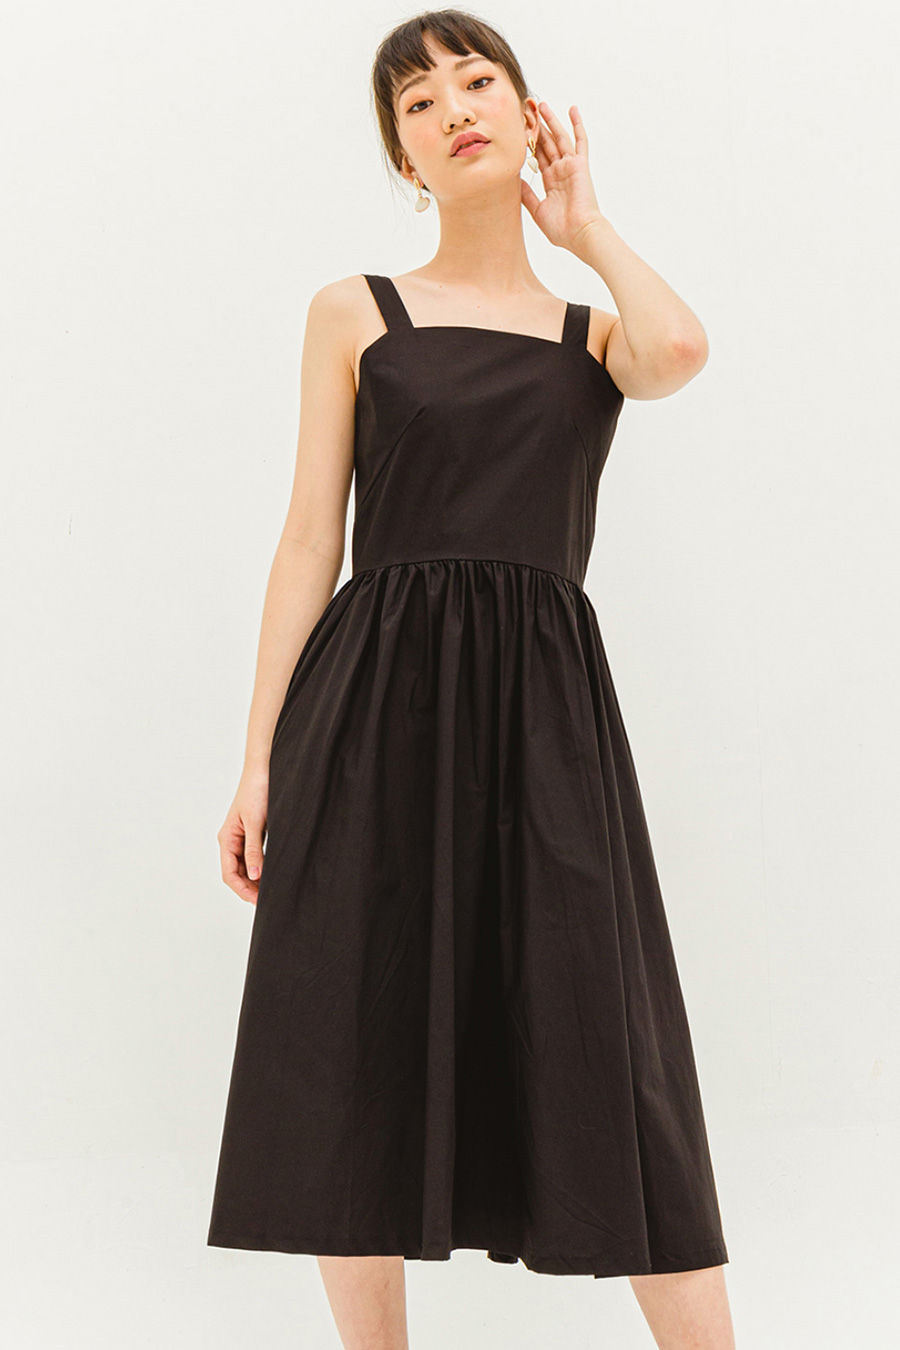 FLORINE DRESS - NOIR